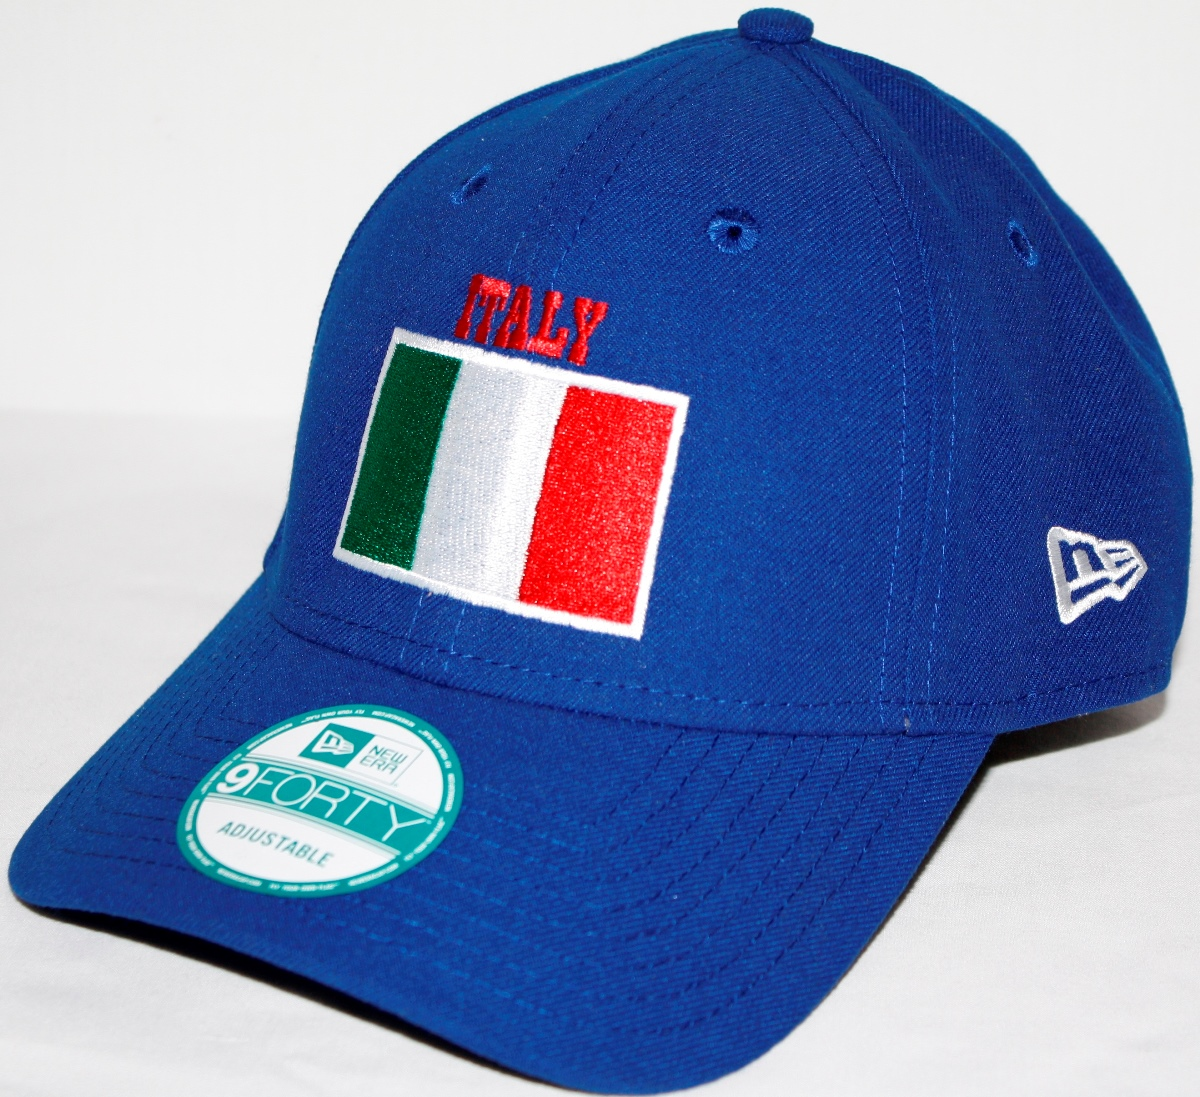 Italy Italia New Era 9Forty Adjustable Hat - Royal Blue